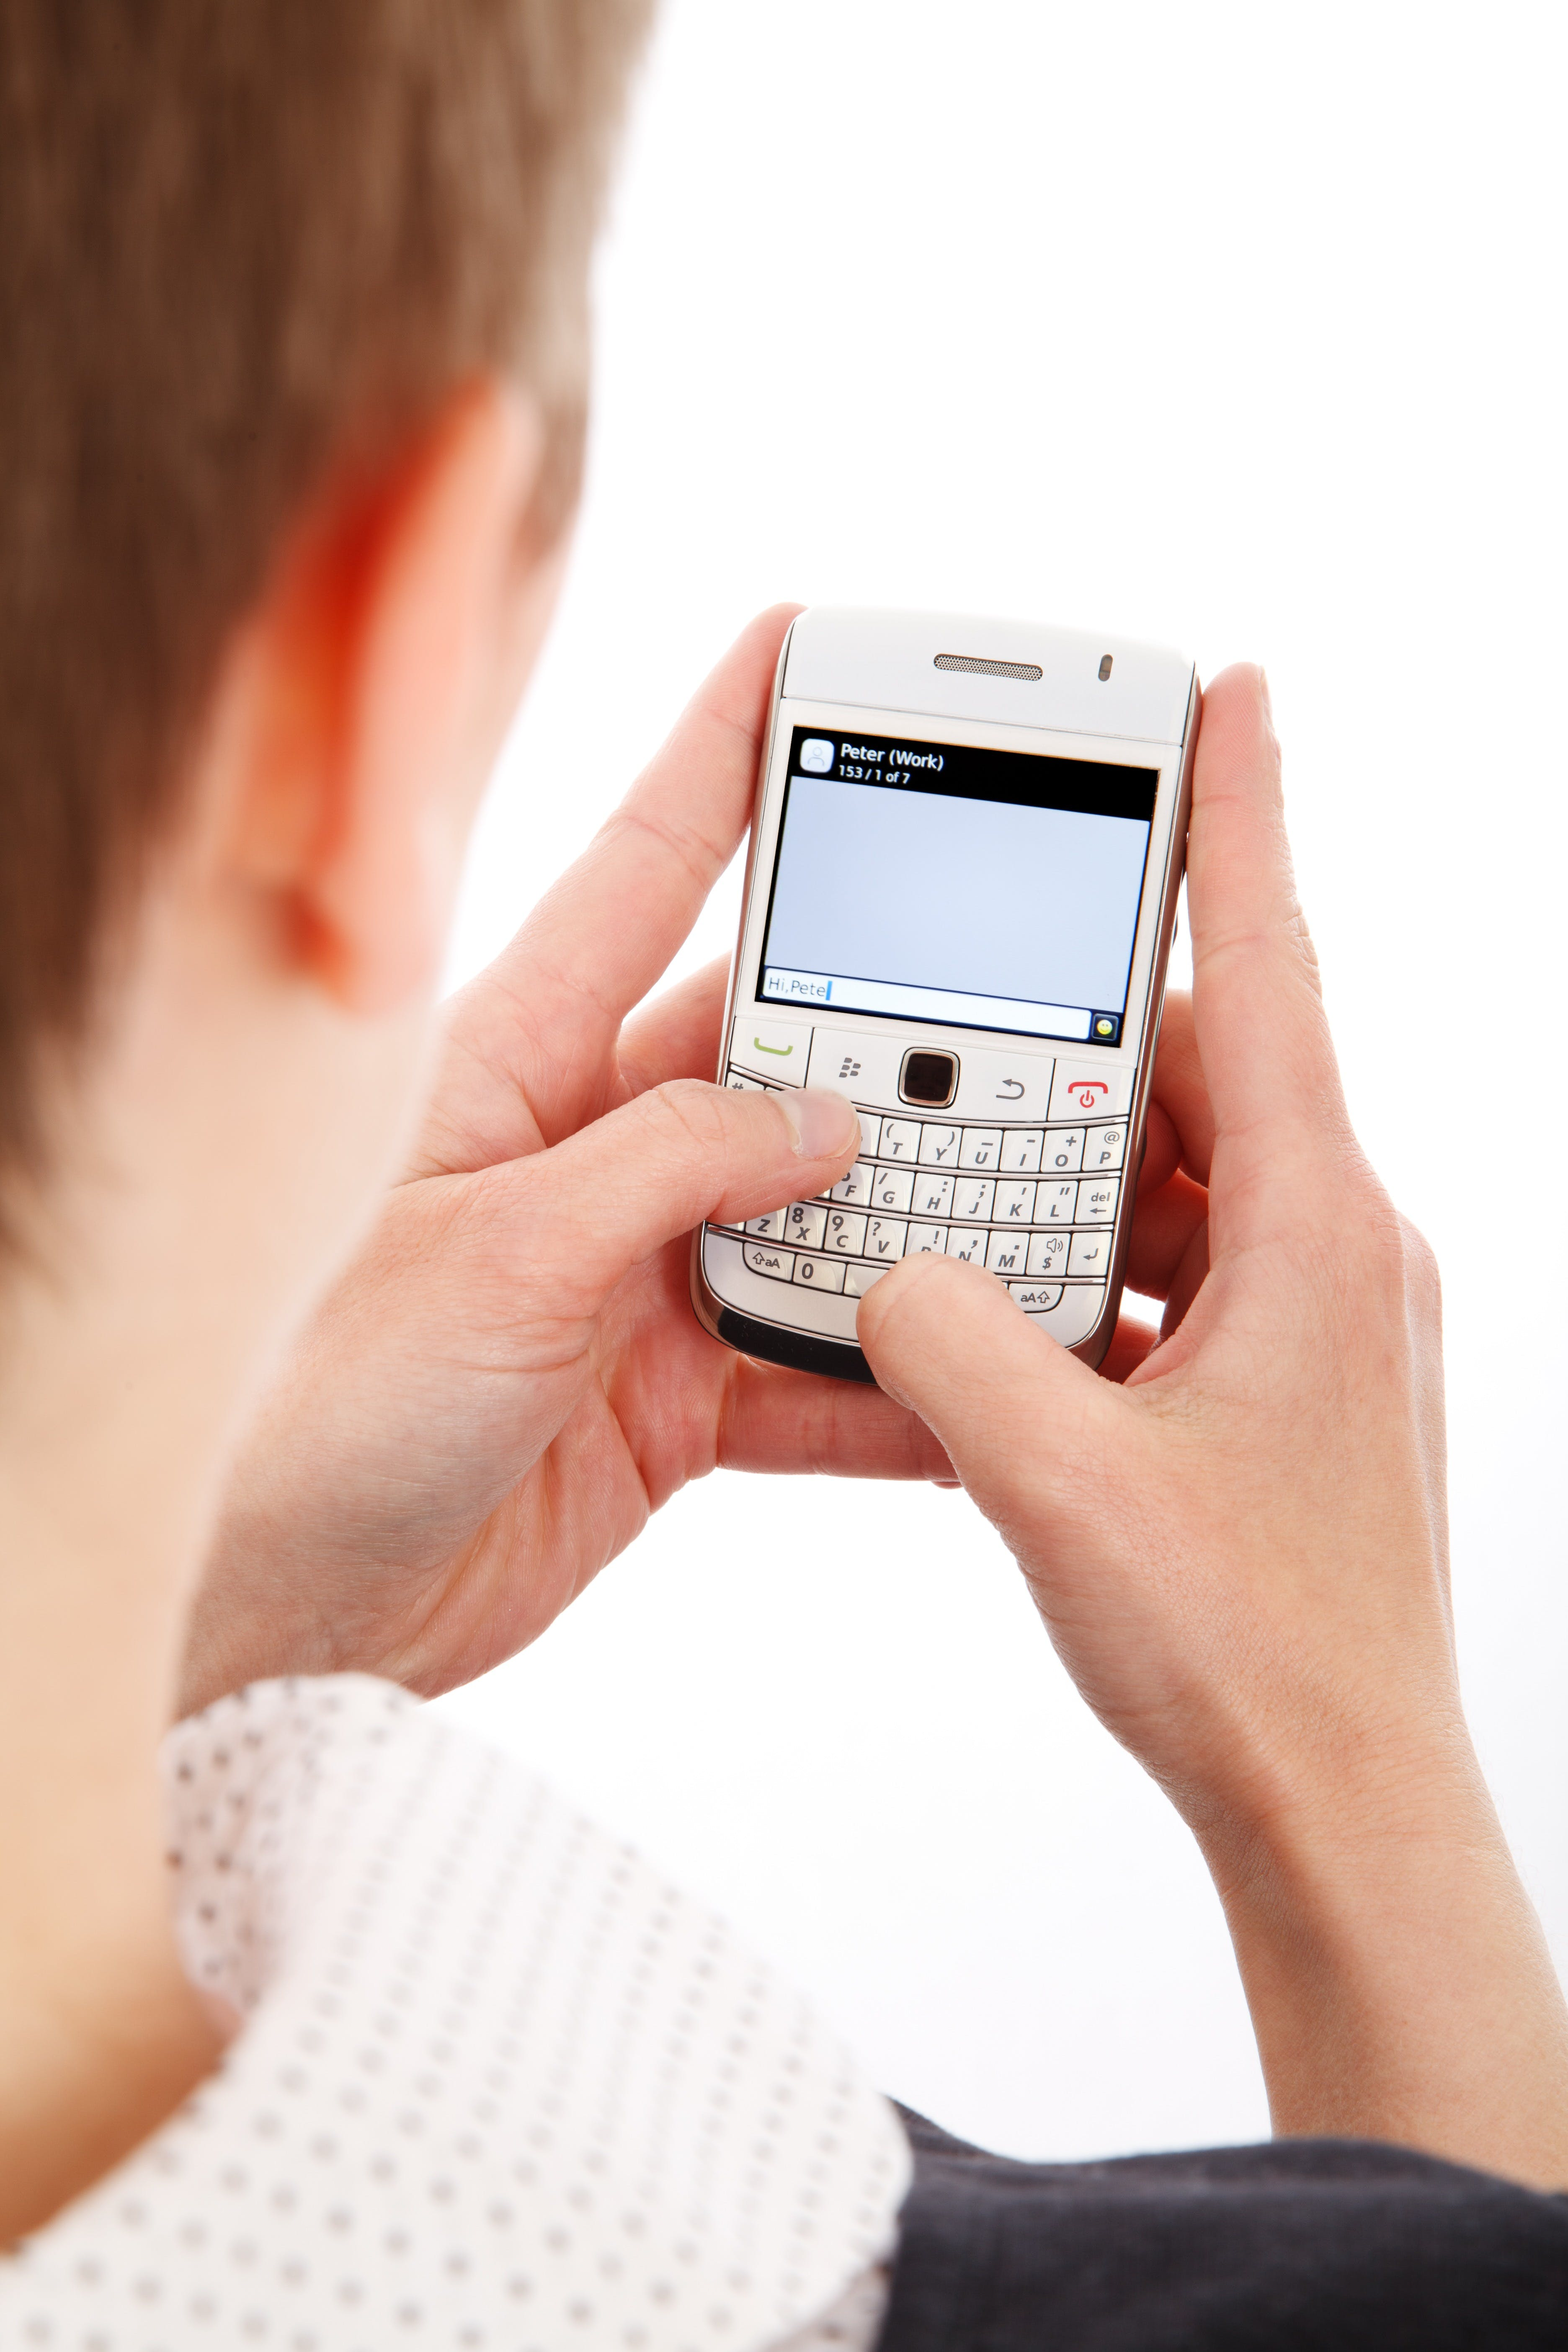 Person in White Top Using White Qwerty Phone